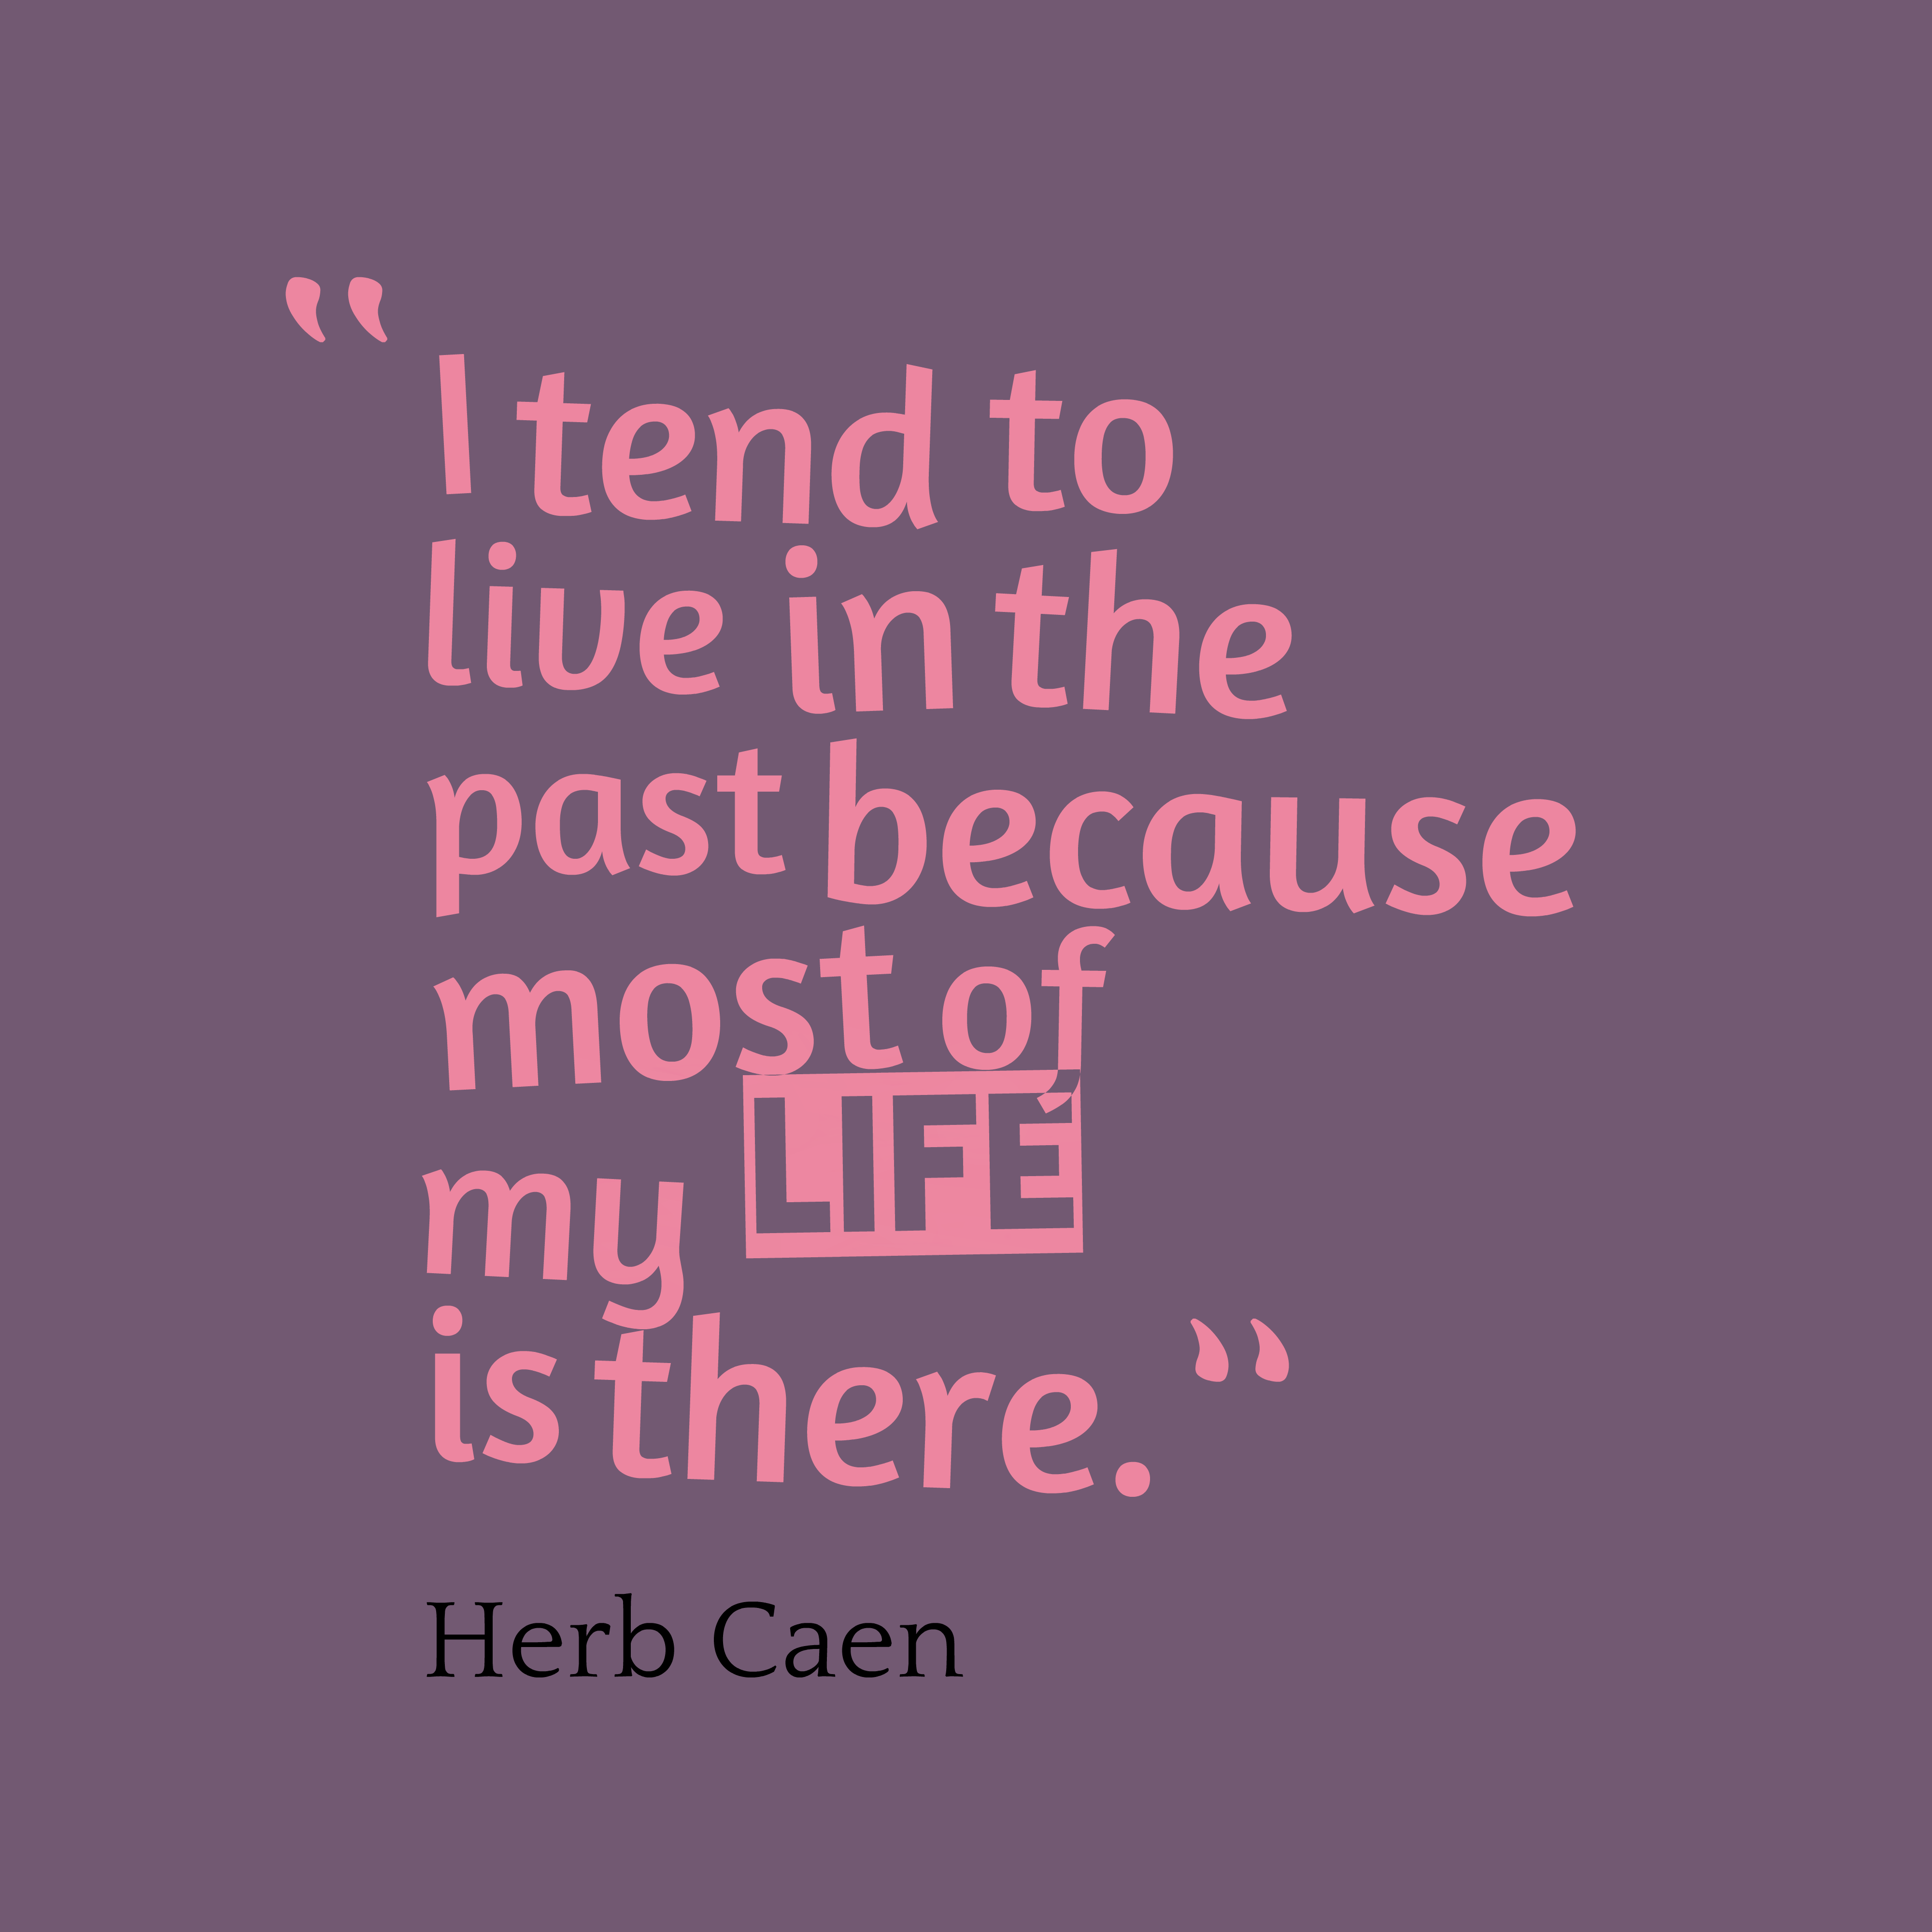 Quotes image of I tend to live in the past because most of my life is there.